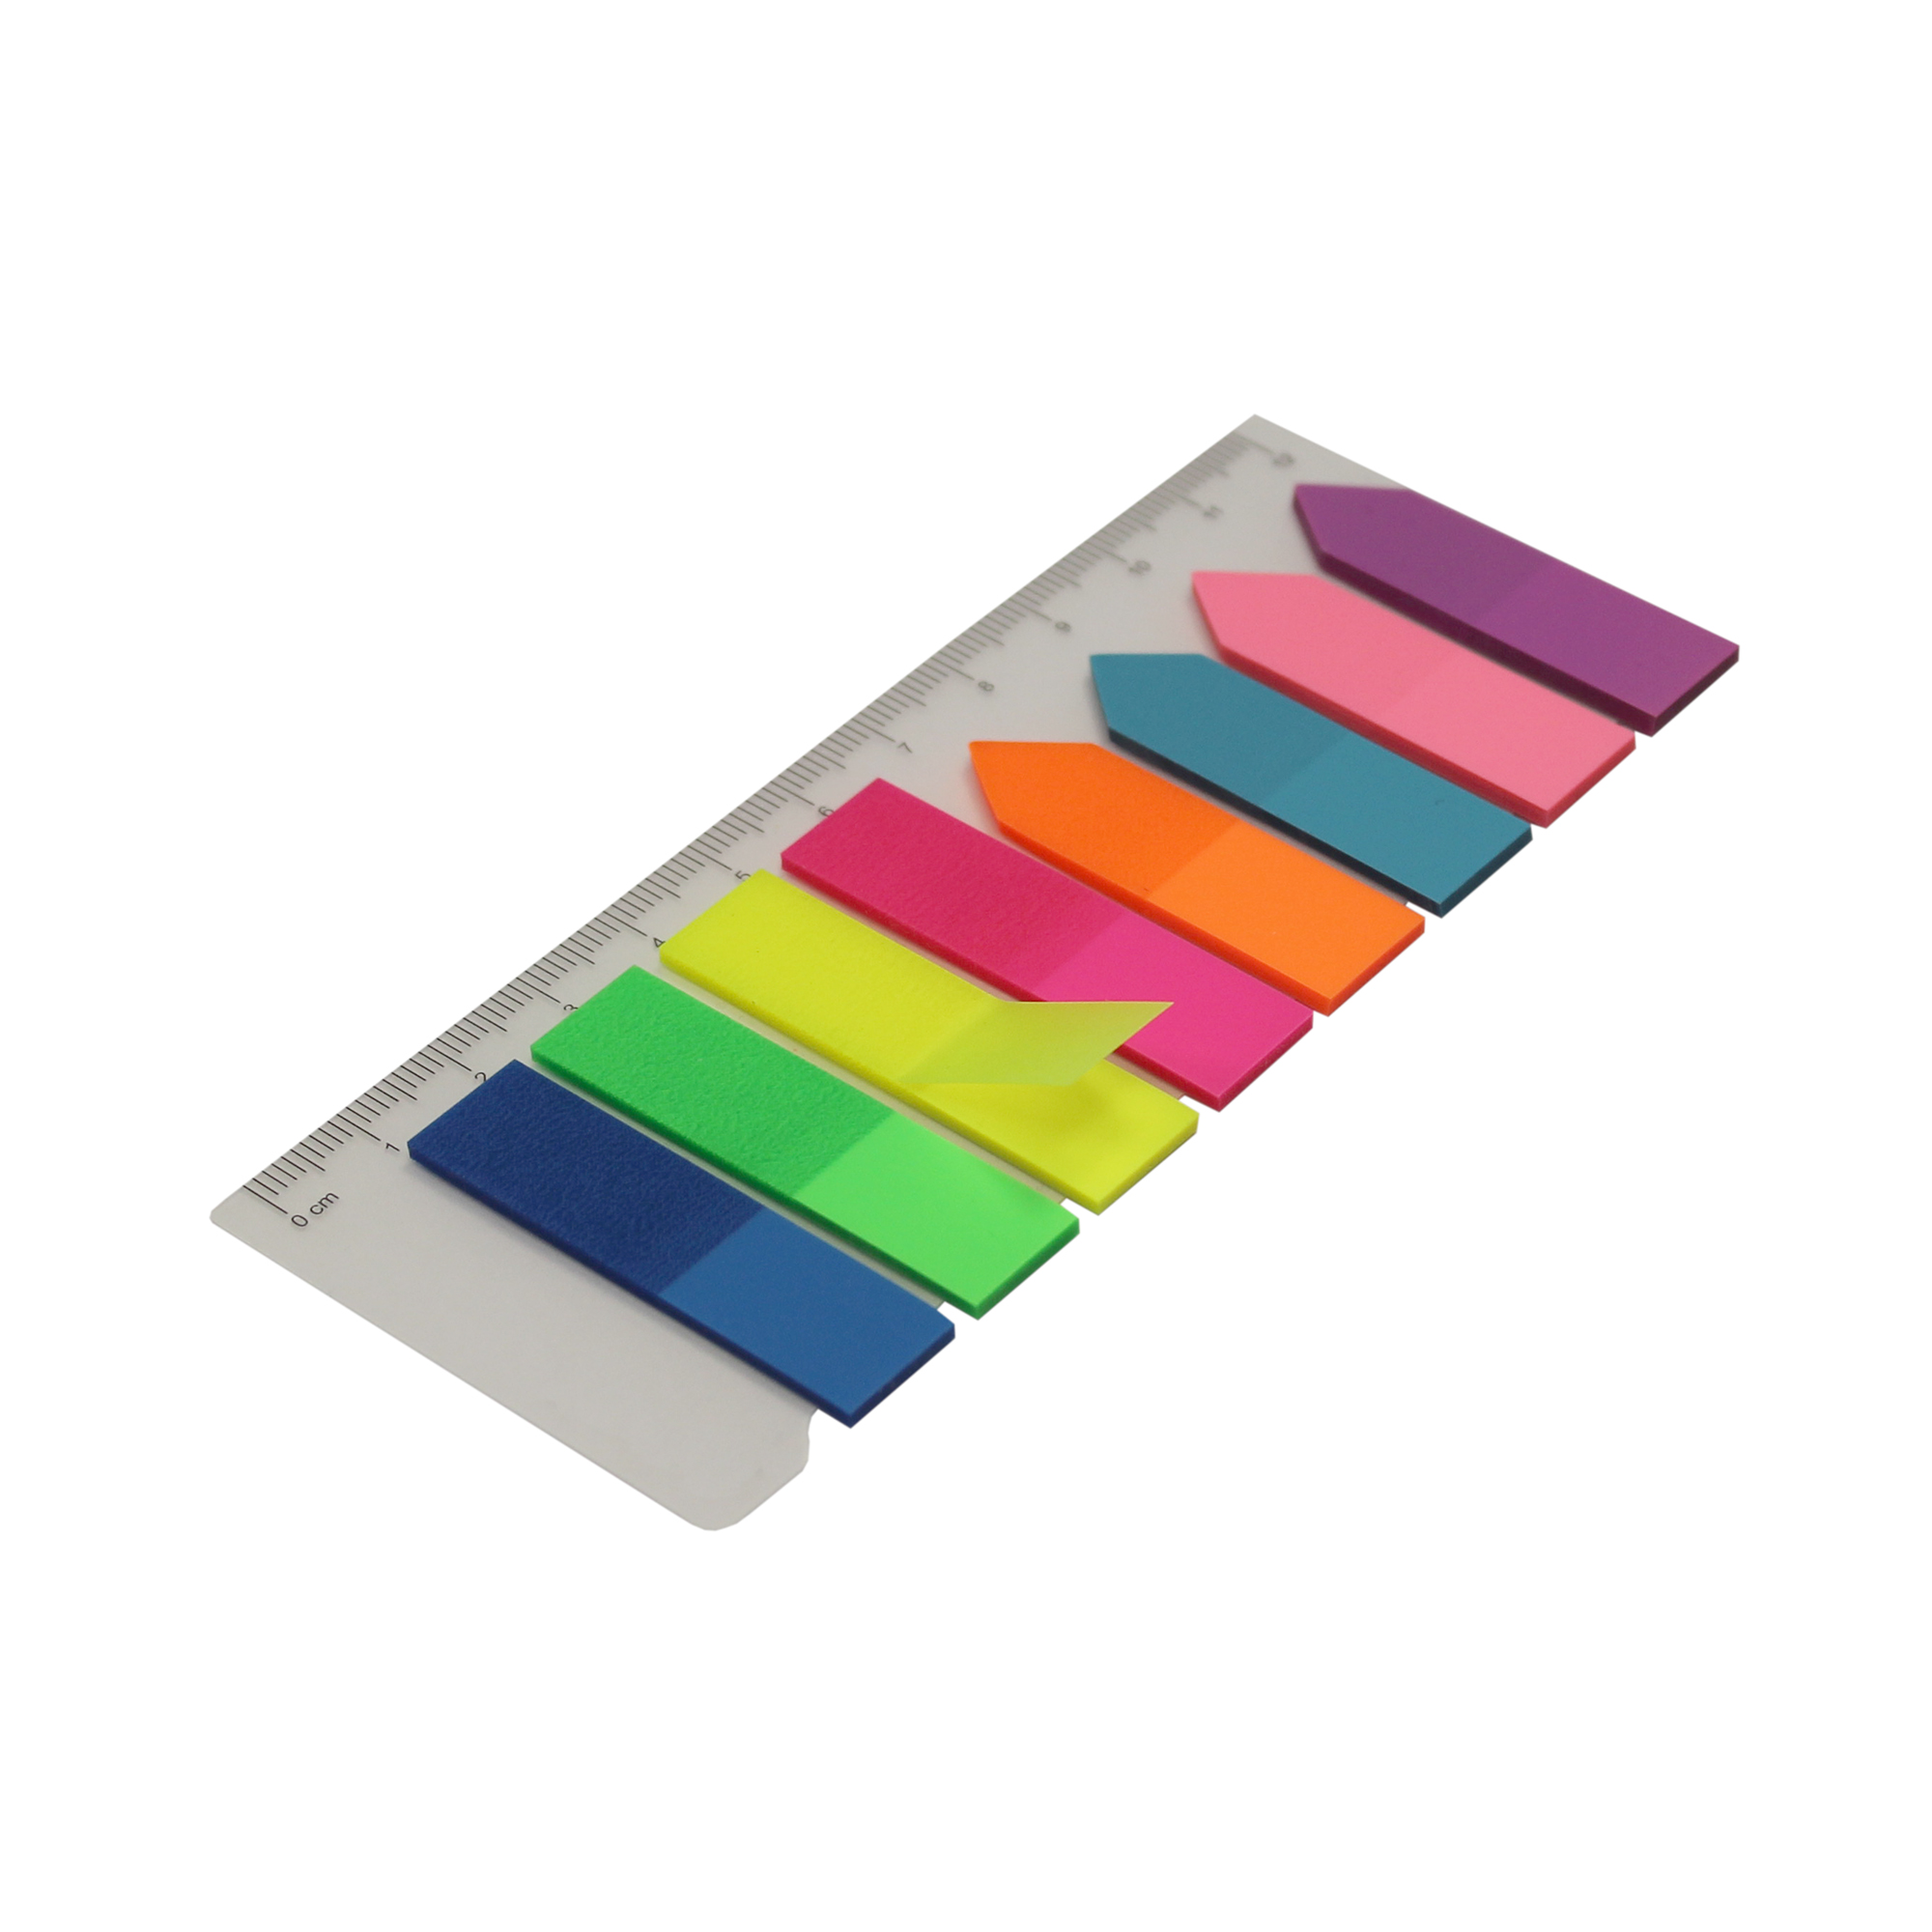 5 Star Re-move Index Arrows & Flags 42x12mm & 45x12mm 25 Sheets 8 Assorted Colours [Pack 5]